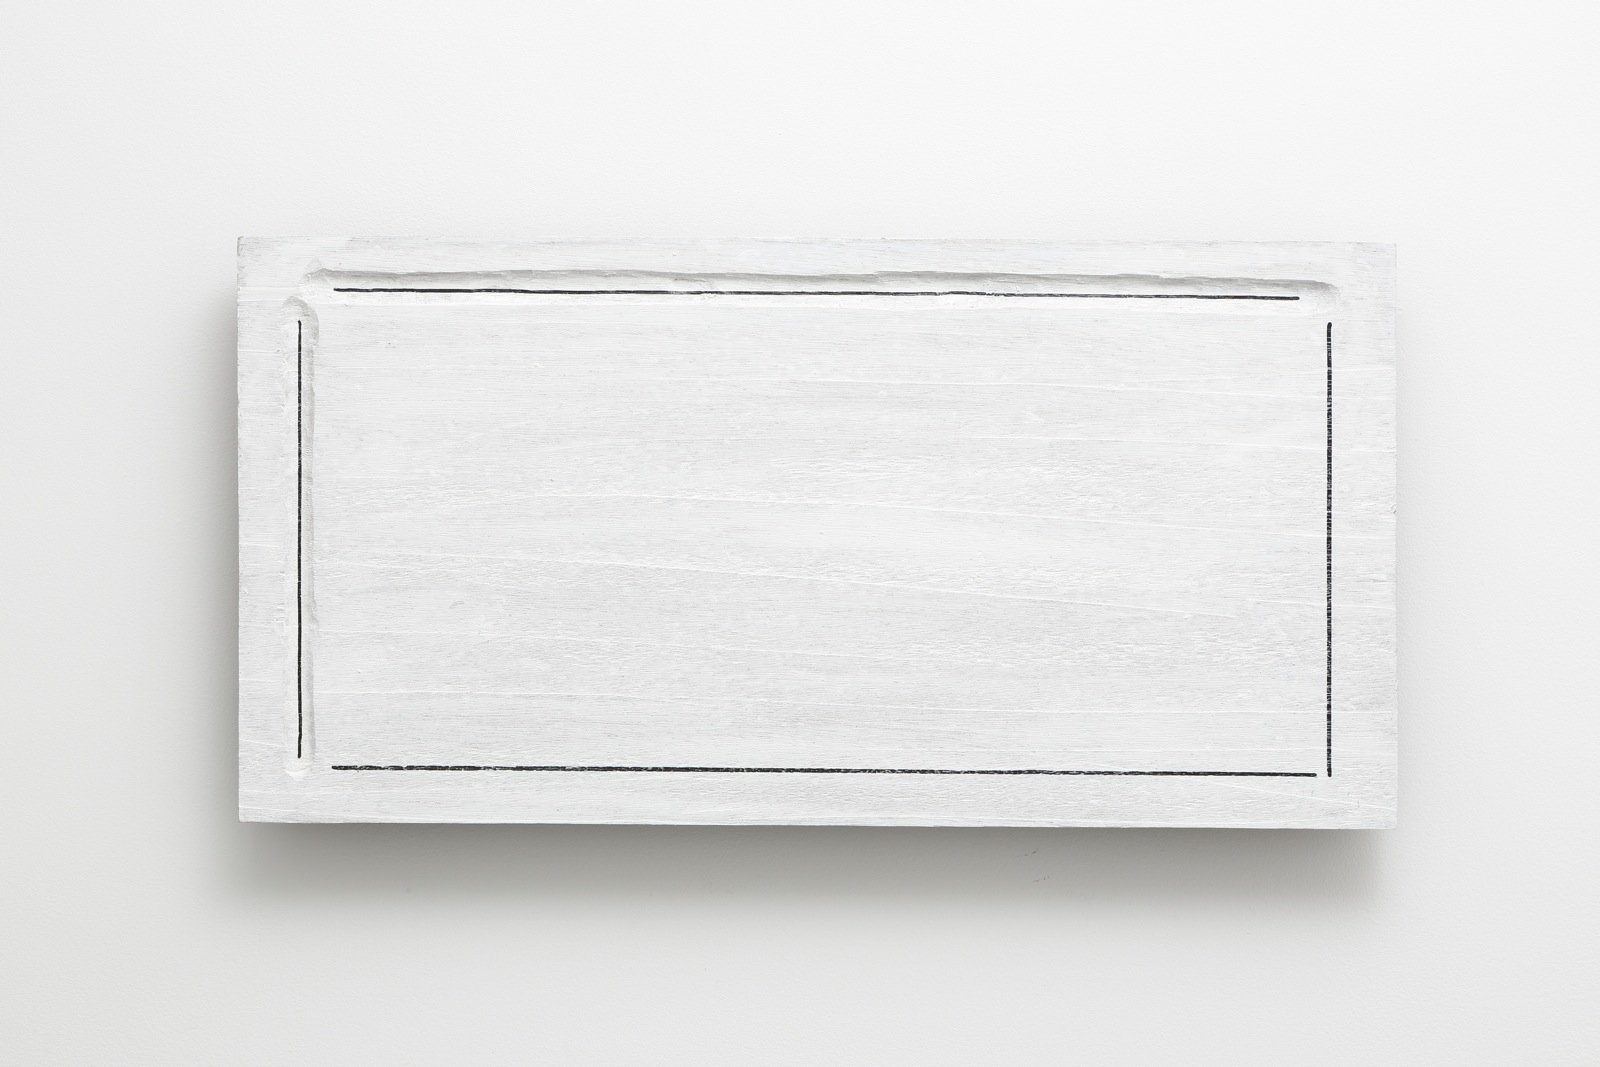 Enclosed Condition , 1977 囲状 ( ijō ) Wood, paint, marker pen, varnish 14 x 27 1/2 x 2 1/8 inches 35.6 x 69.9 x 5.4 centimeters